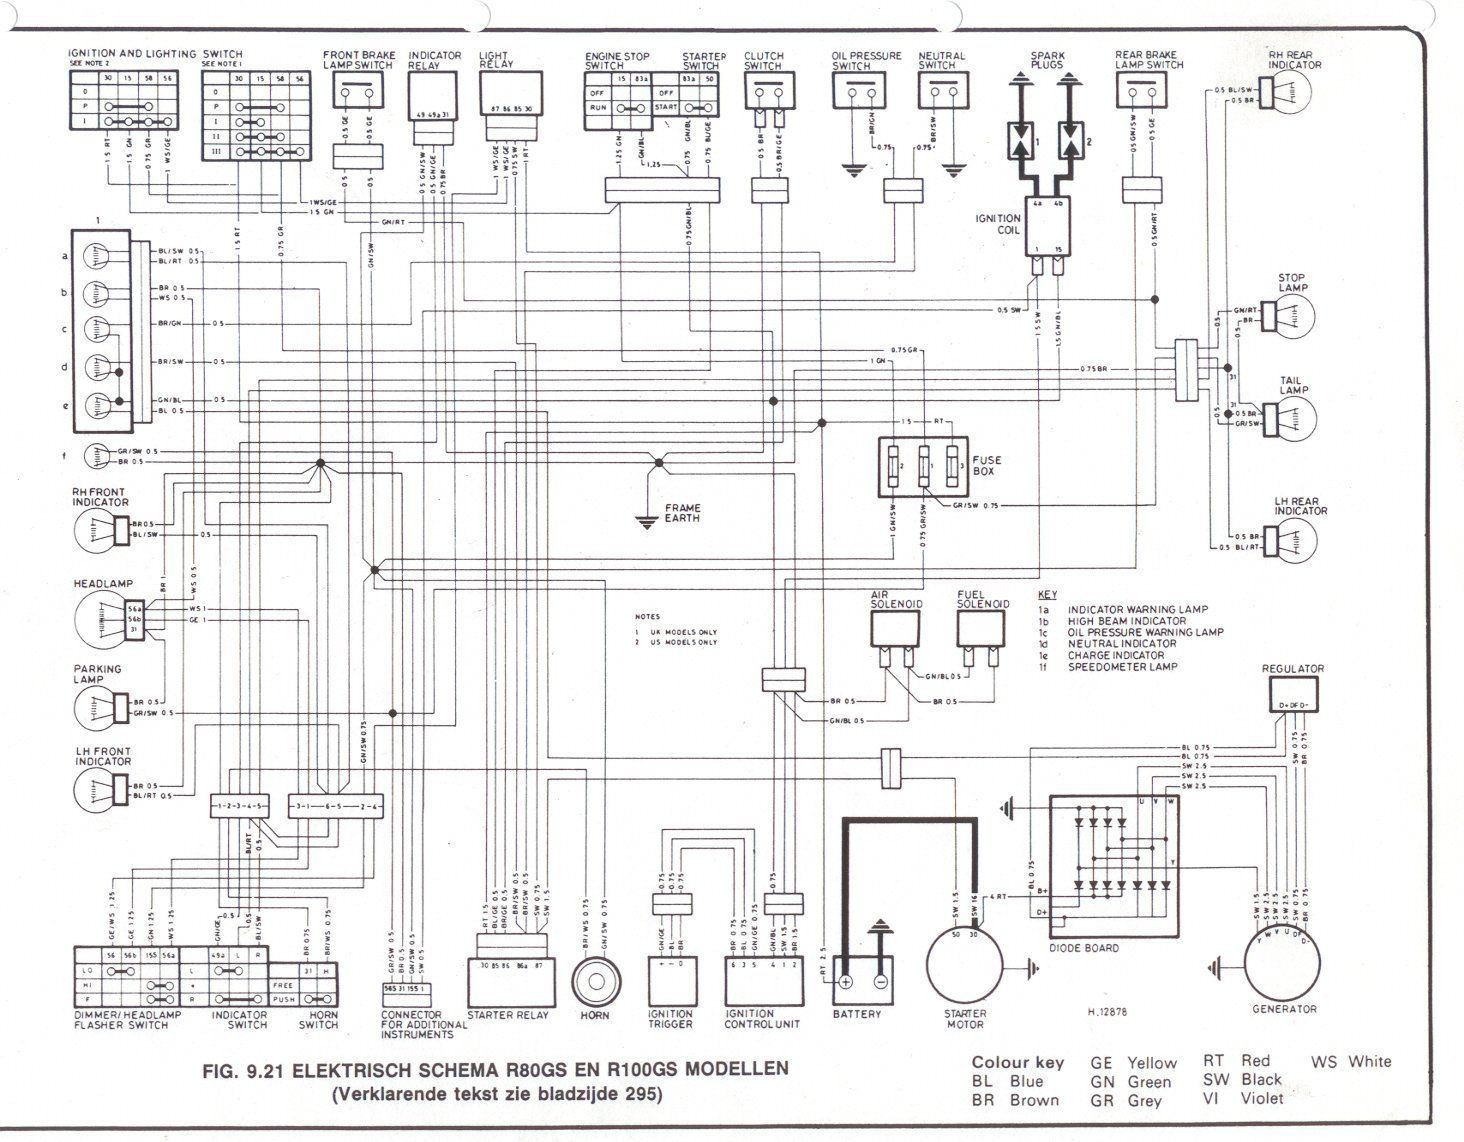 R1100rt Conbine Switch Wiring Diagram,rt • Edmiracle.co